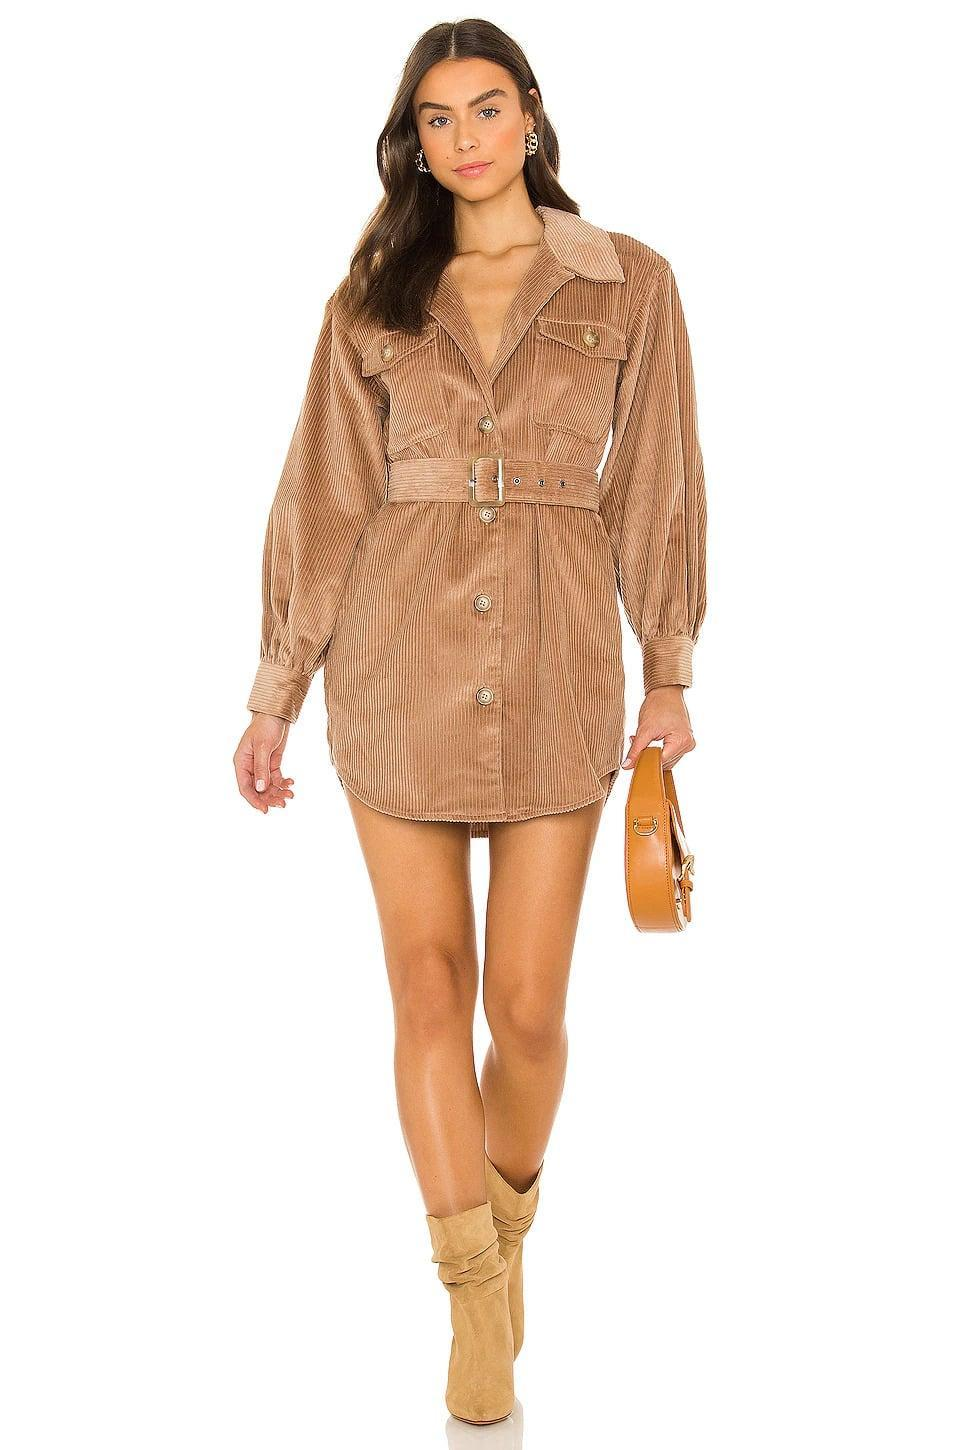 <p>The <span>BB Dakota by Steve Madden Cord Of It All Dress in Light Camel</span> ($129) is such a vibe for the fall. You can wear it as is with knee high boots or layer the dress on top of a white tee and jeans. </p>